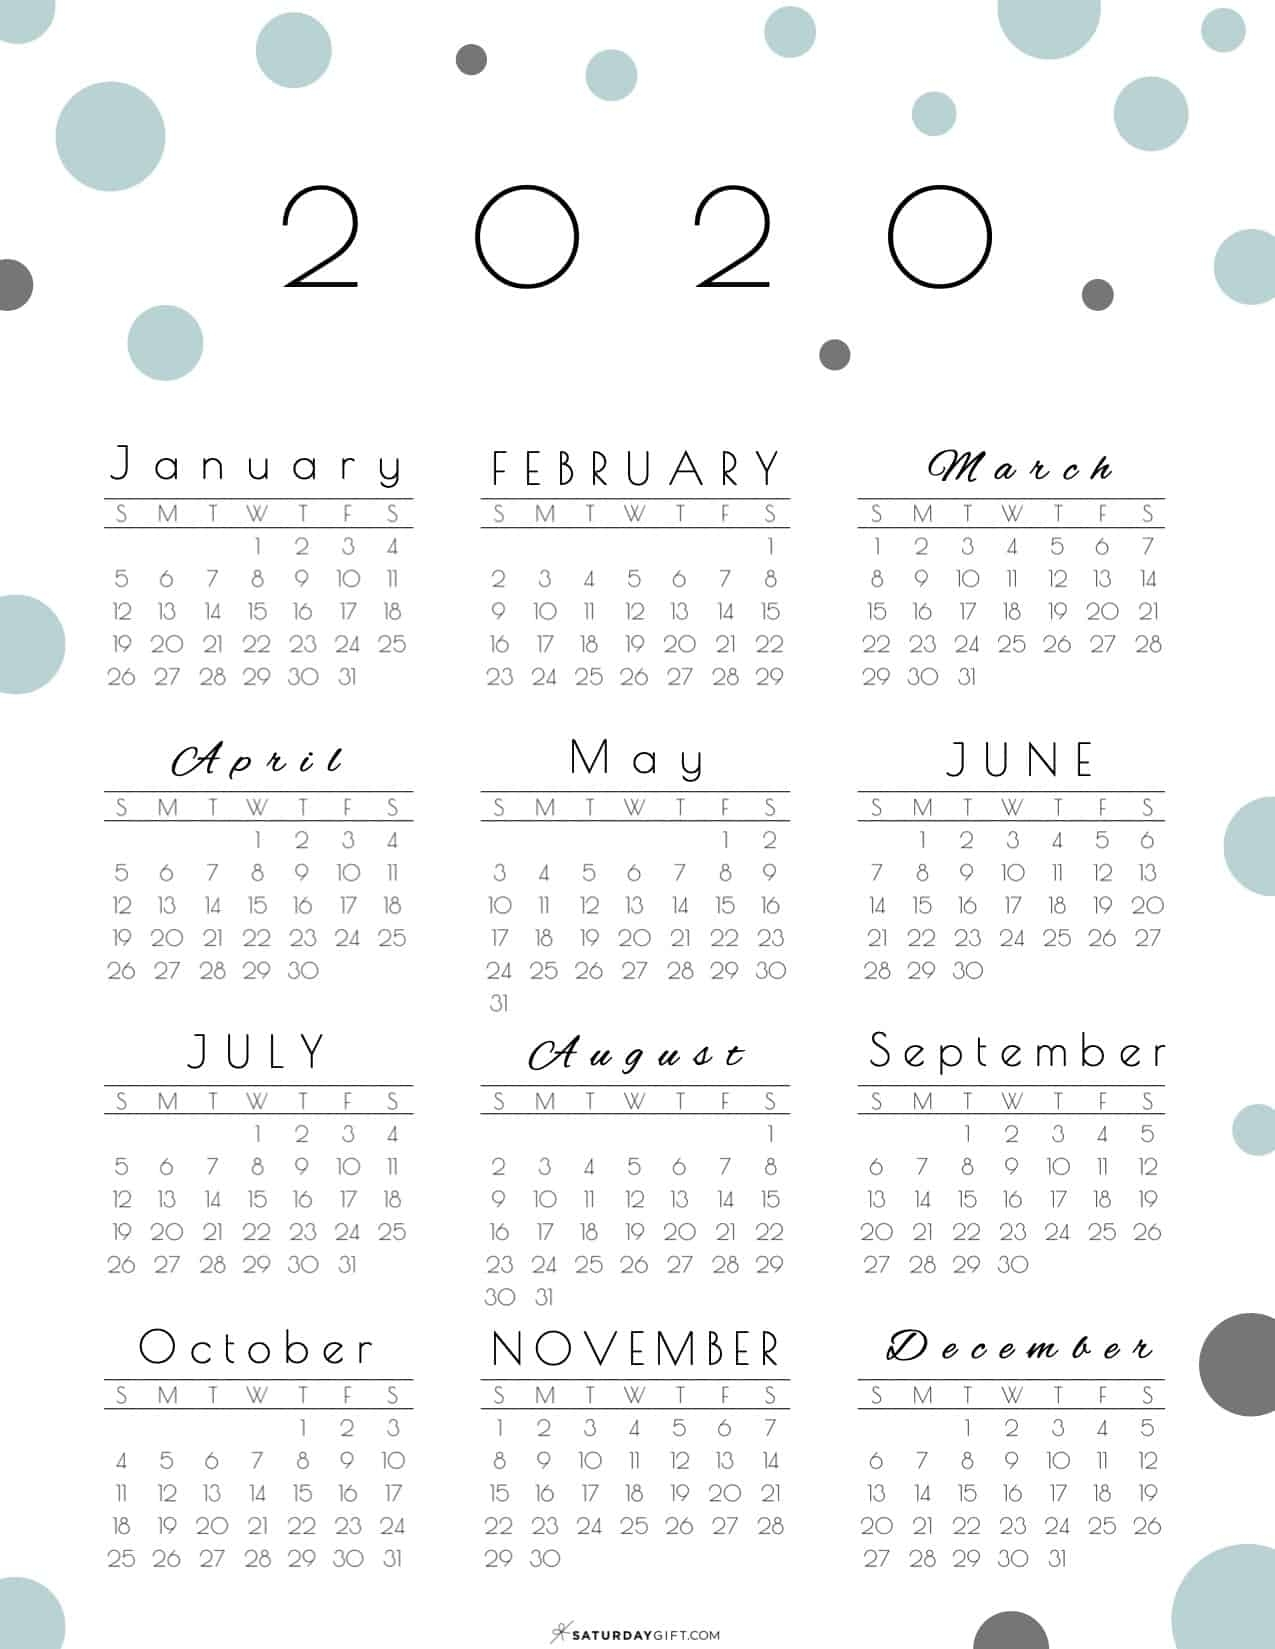 Year At A Glance Calendar 2020 - Pretty (And Free!) Printable with Free Printable Year At A Glance 2020 Calendar